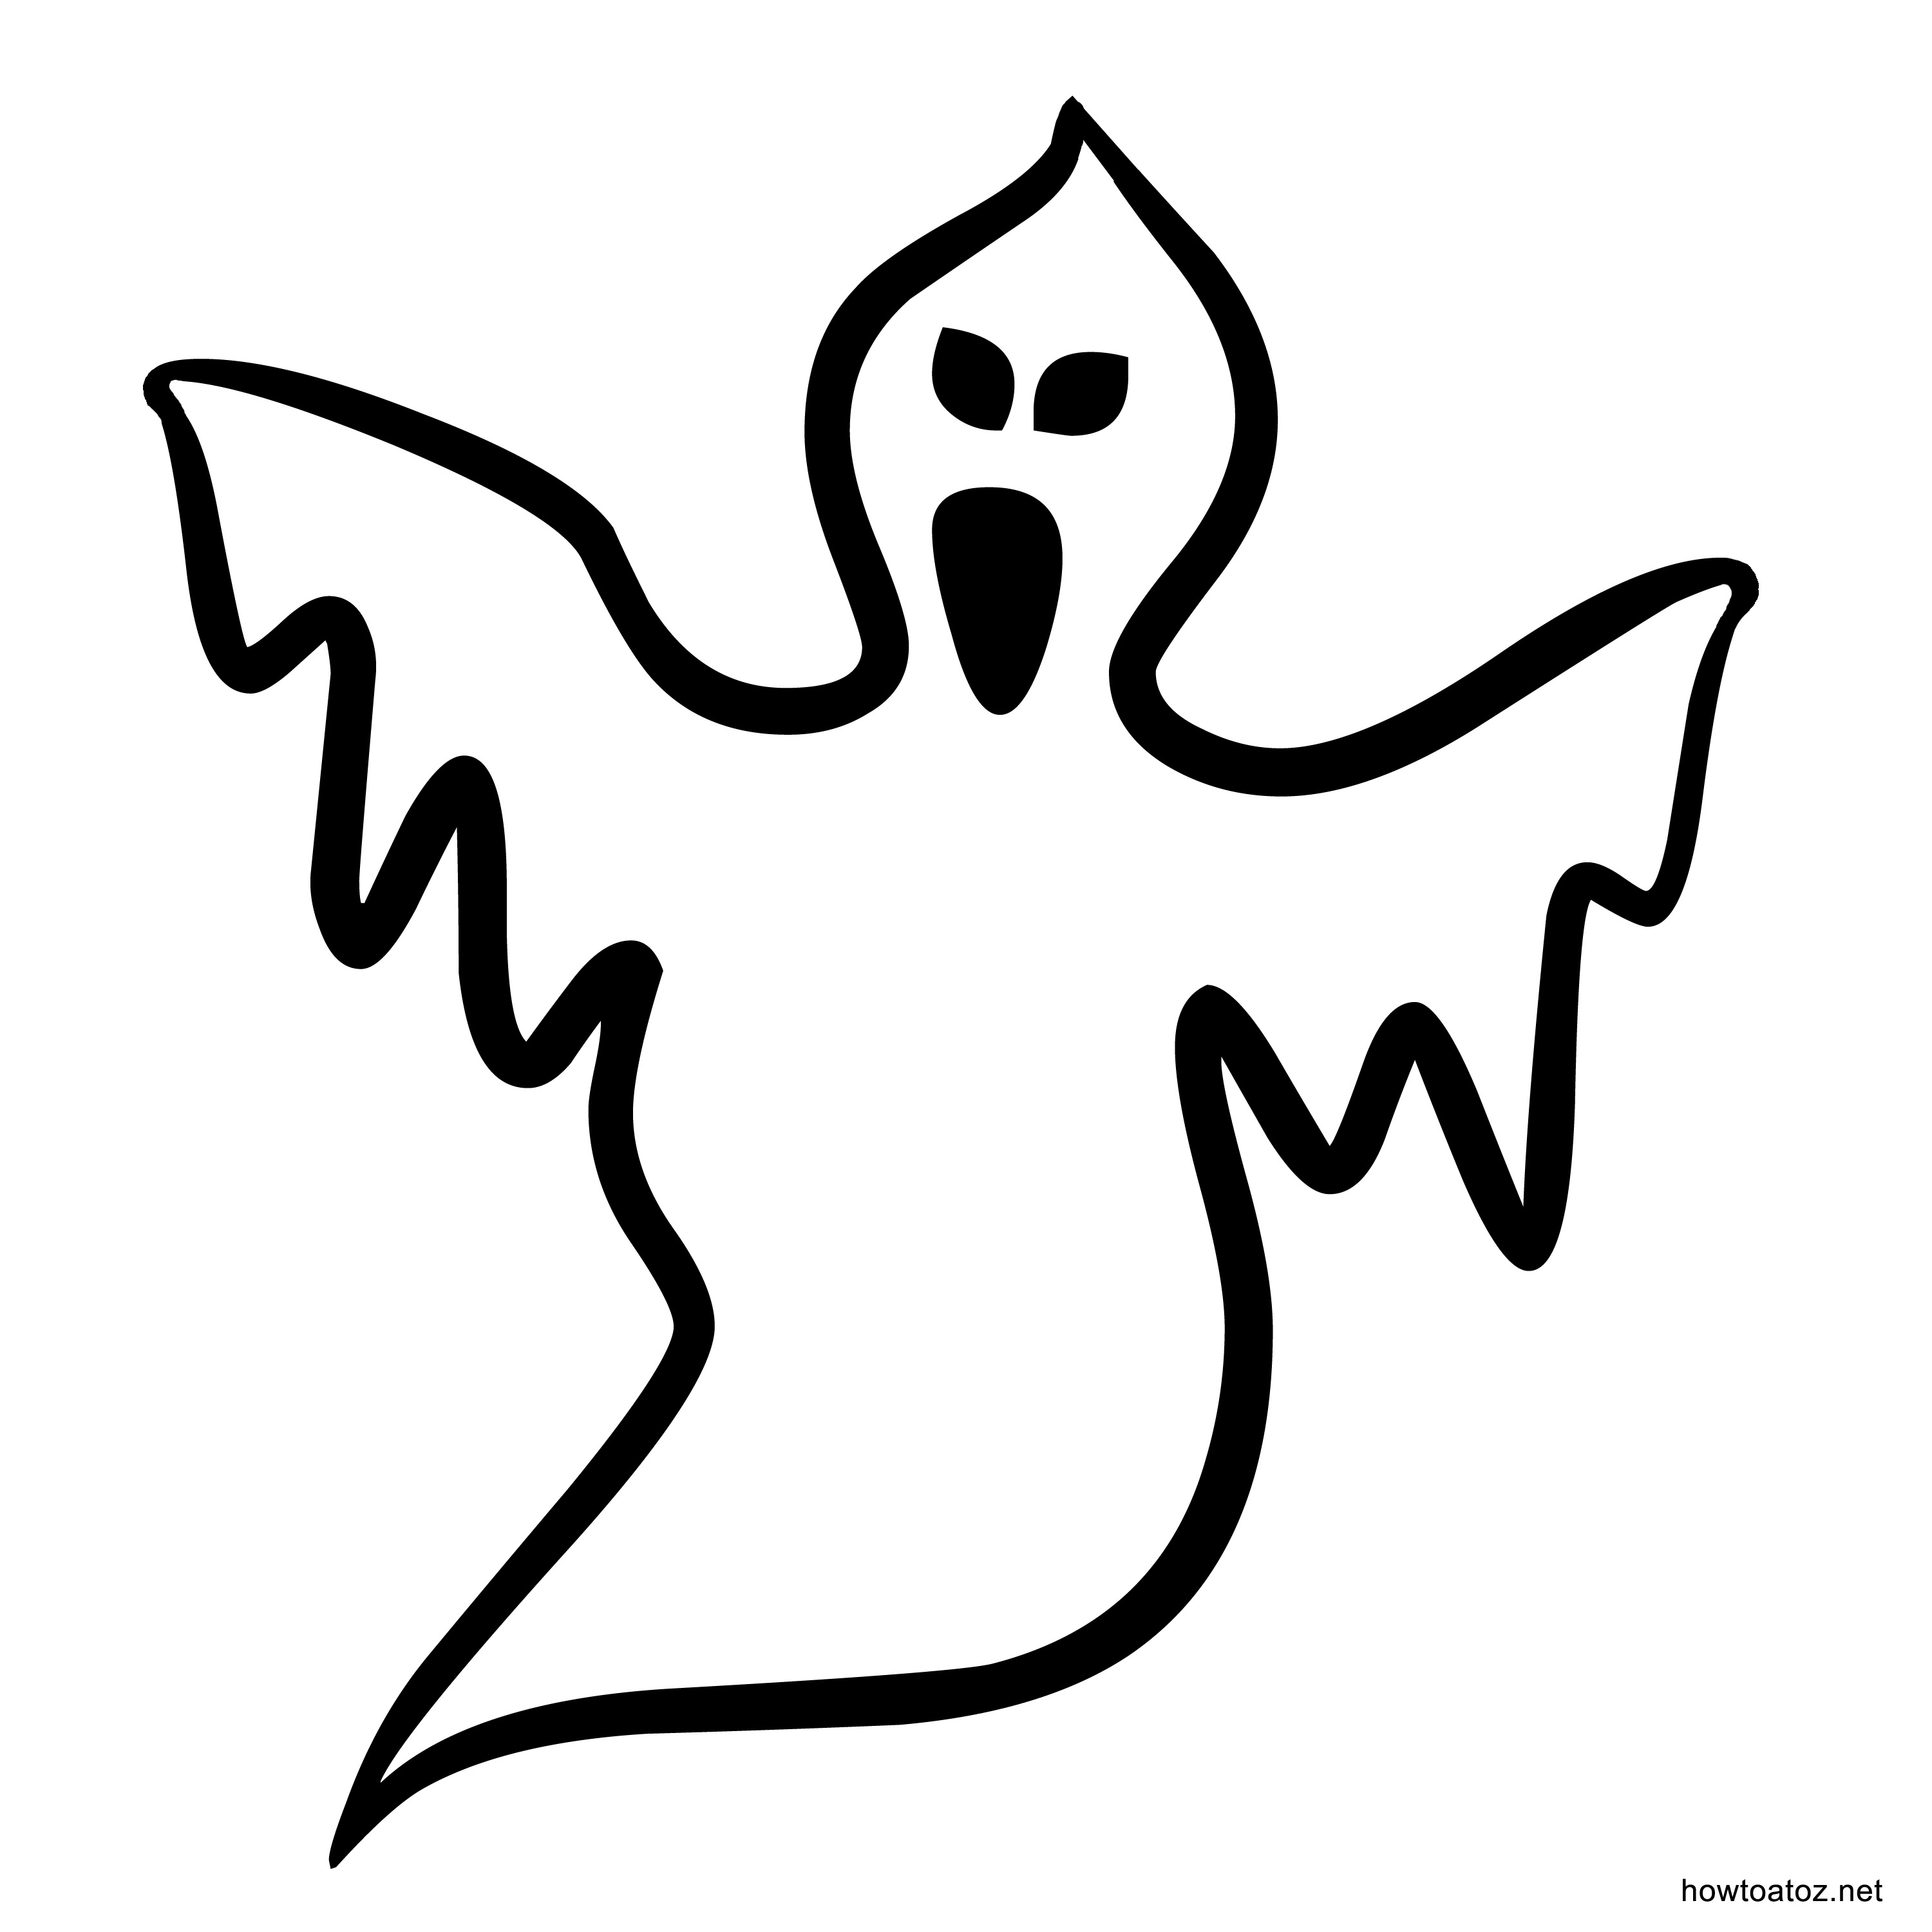 Halloween Decoration Stencils And Templates